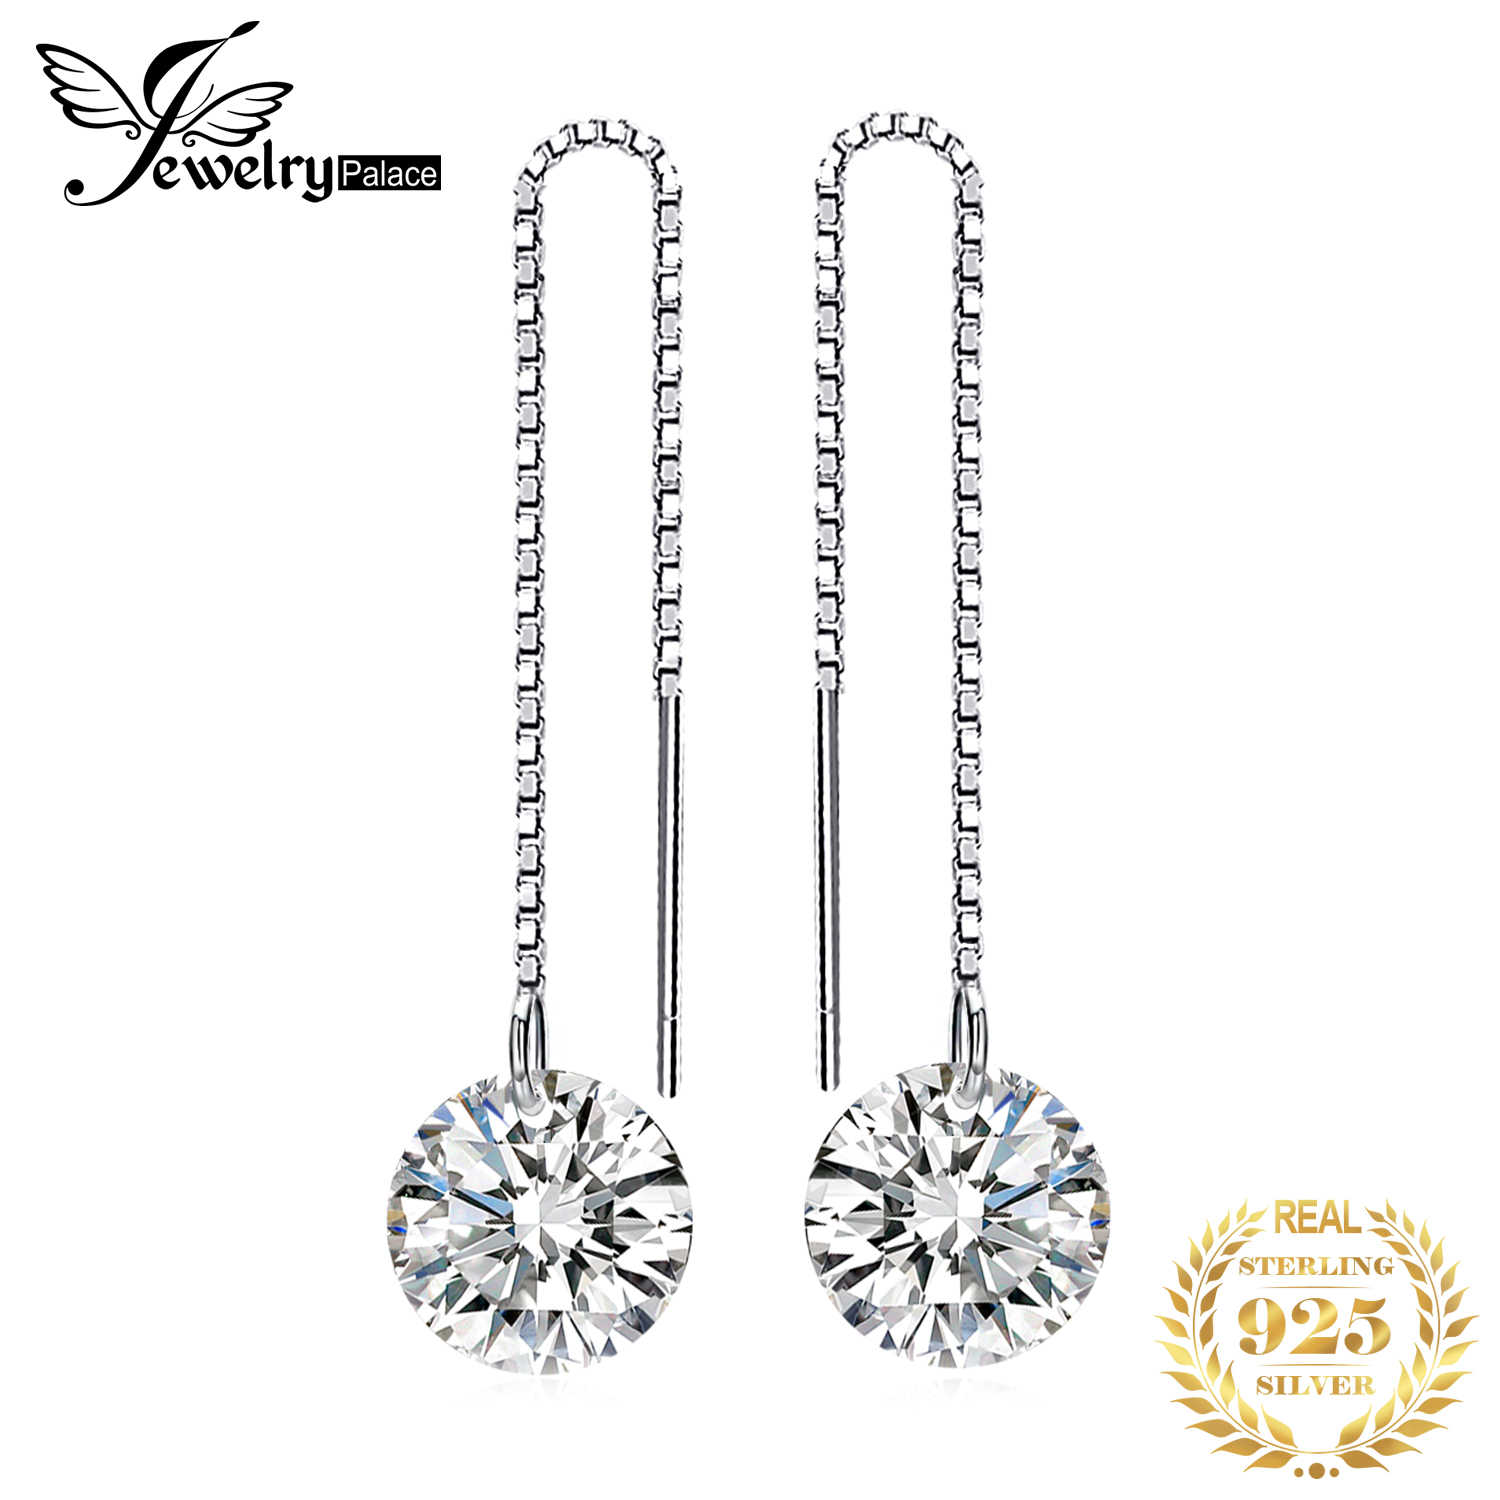 Jewelrypalace 925 Sterling Silver Cubic Zirconia CZ Panjang Drop Anting-Anting untuk Wanita Korea Earrings 2020 Anting-Anting Fashion Perhiasan